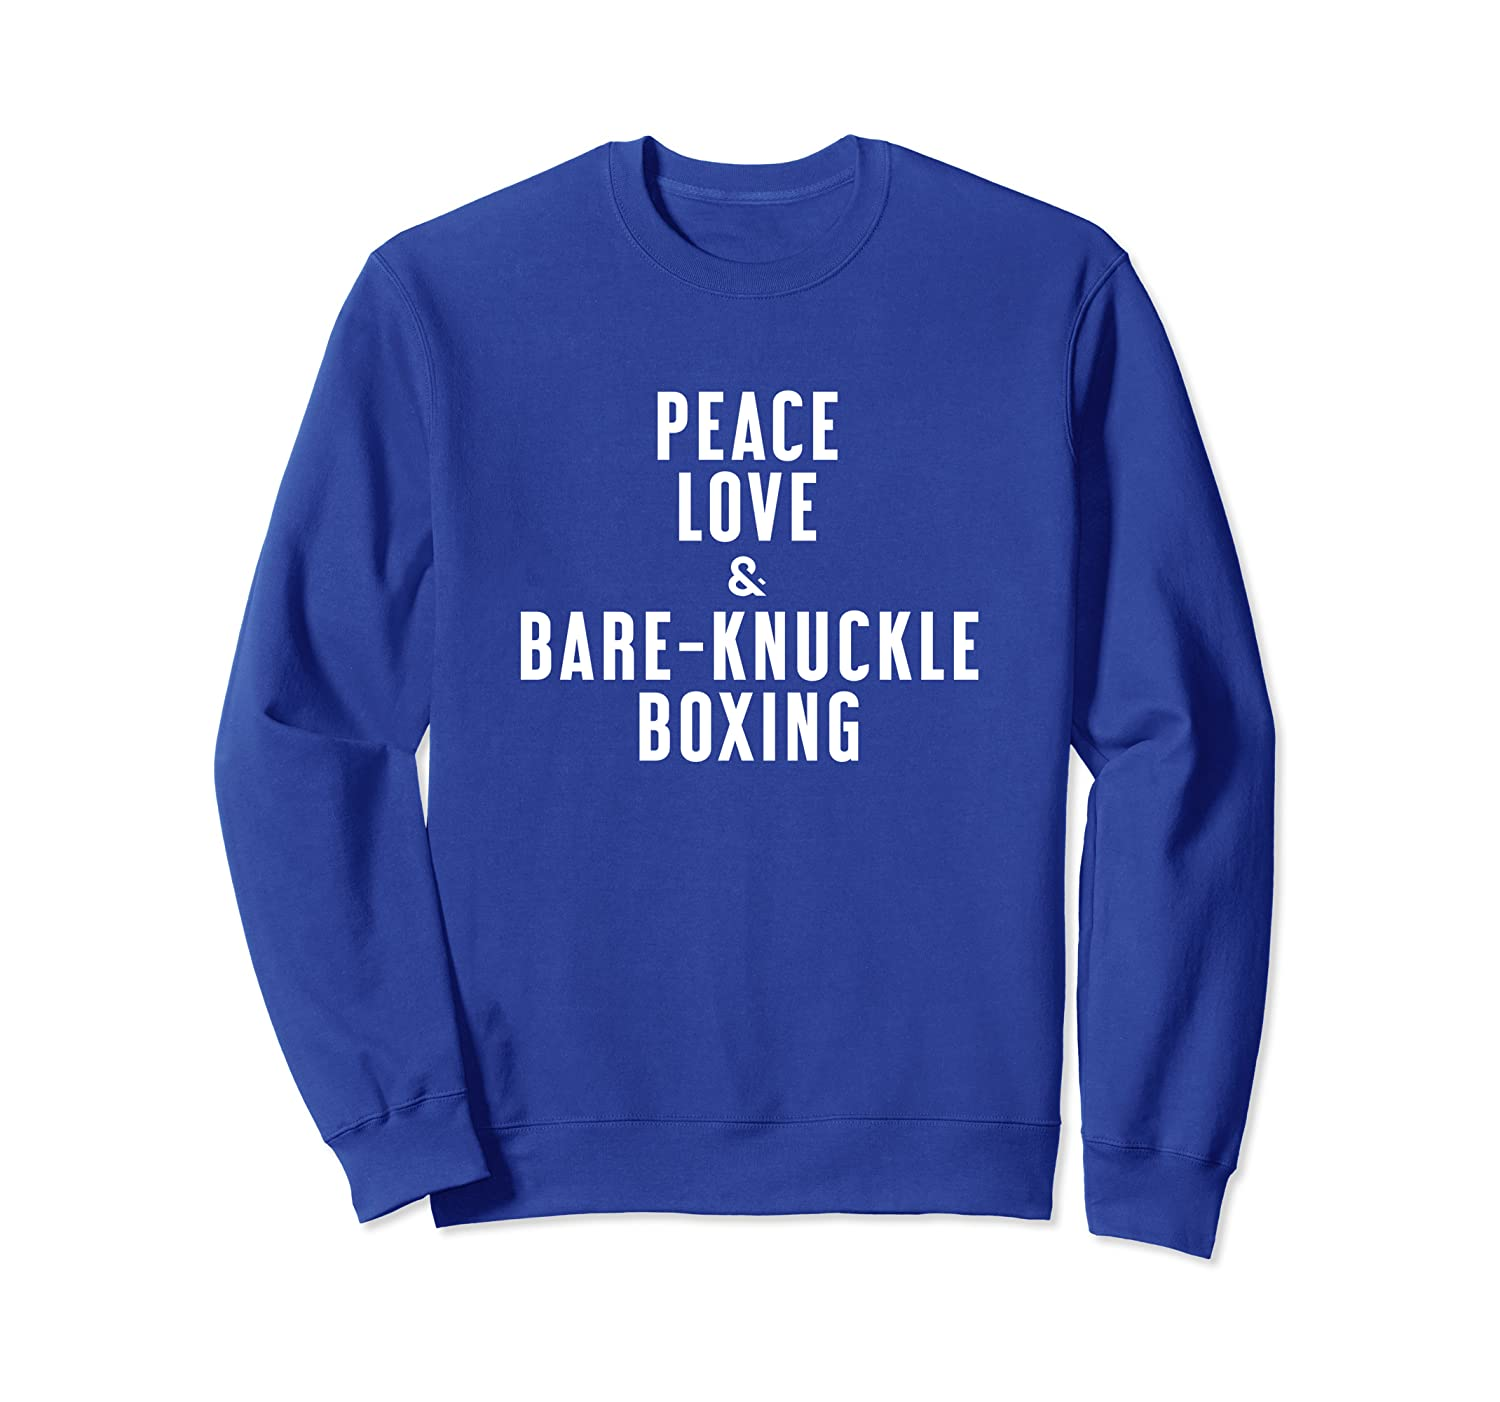 Peace Love and Bare-Knuckle Boxing Sweatshirt